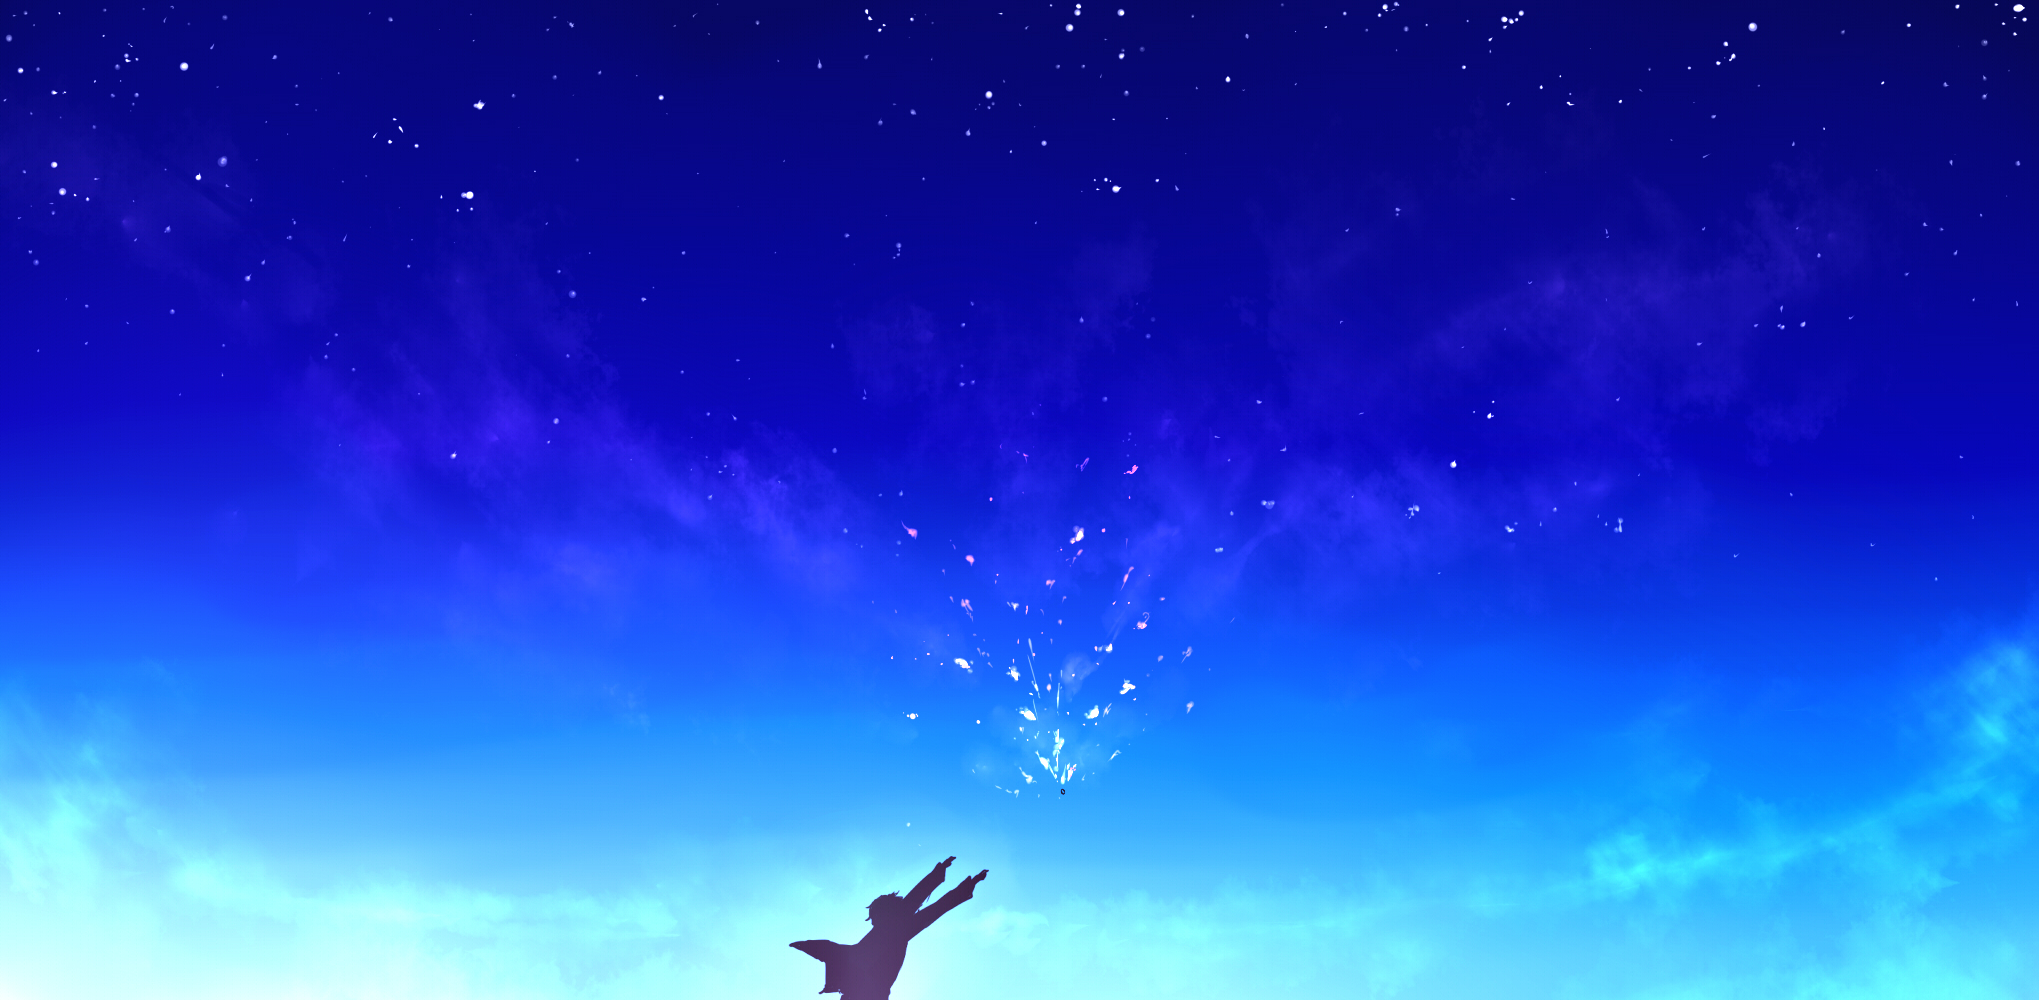 Anime Wallpaper Girl Looking At Stars Beyond The Boundary Wallpaper And Background Image